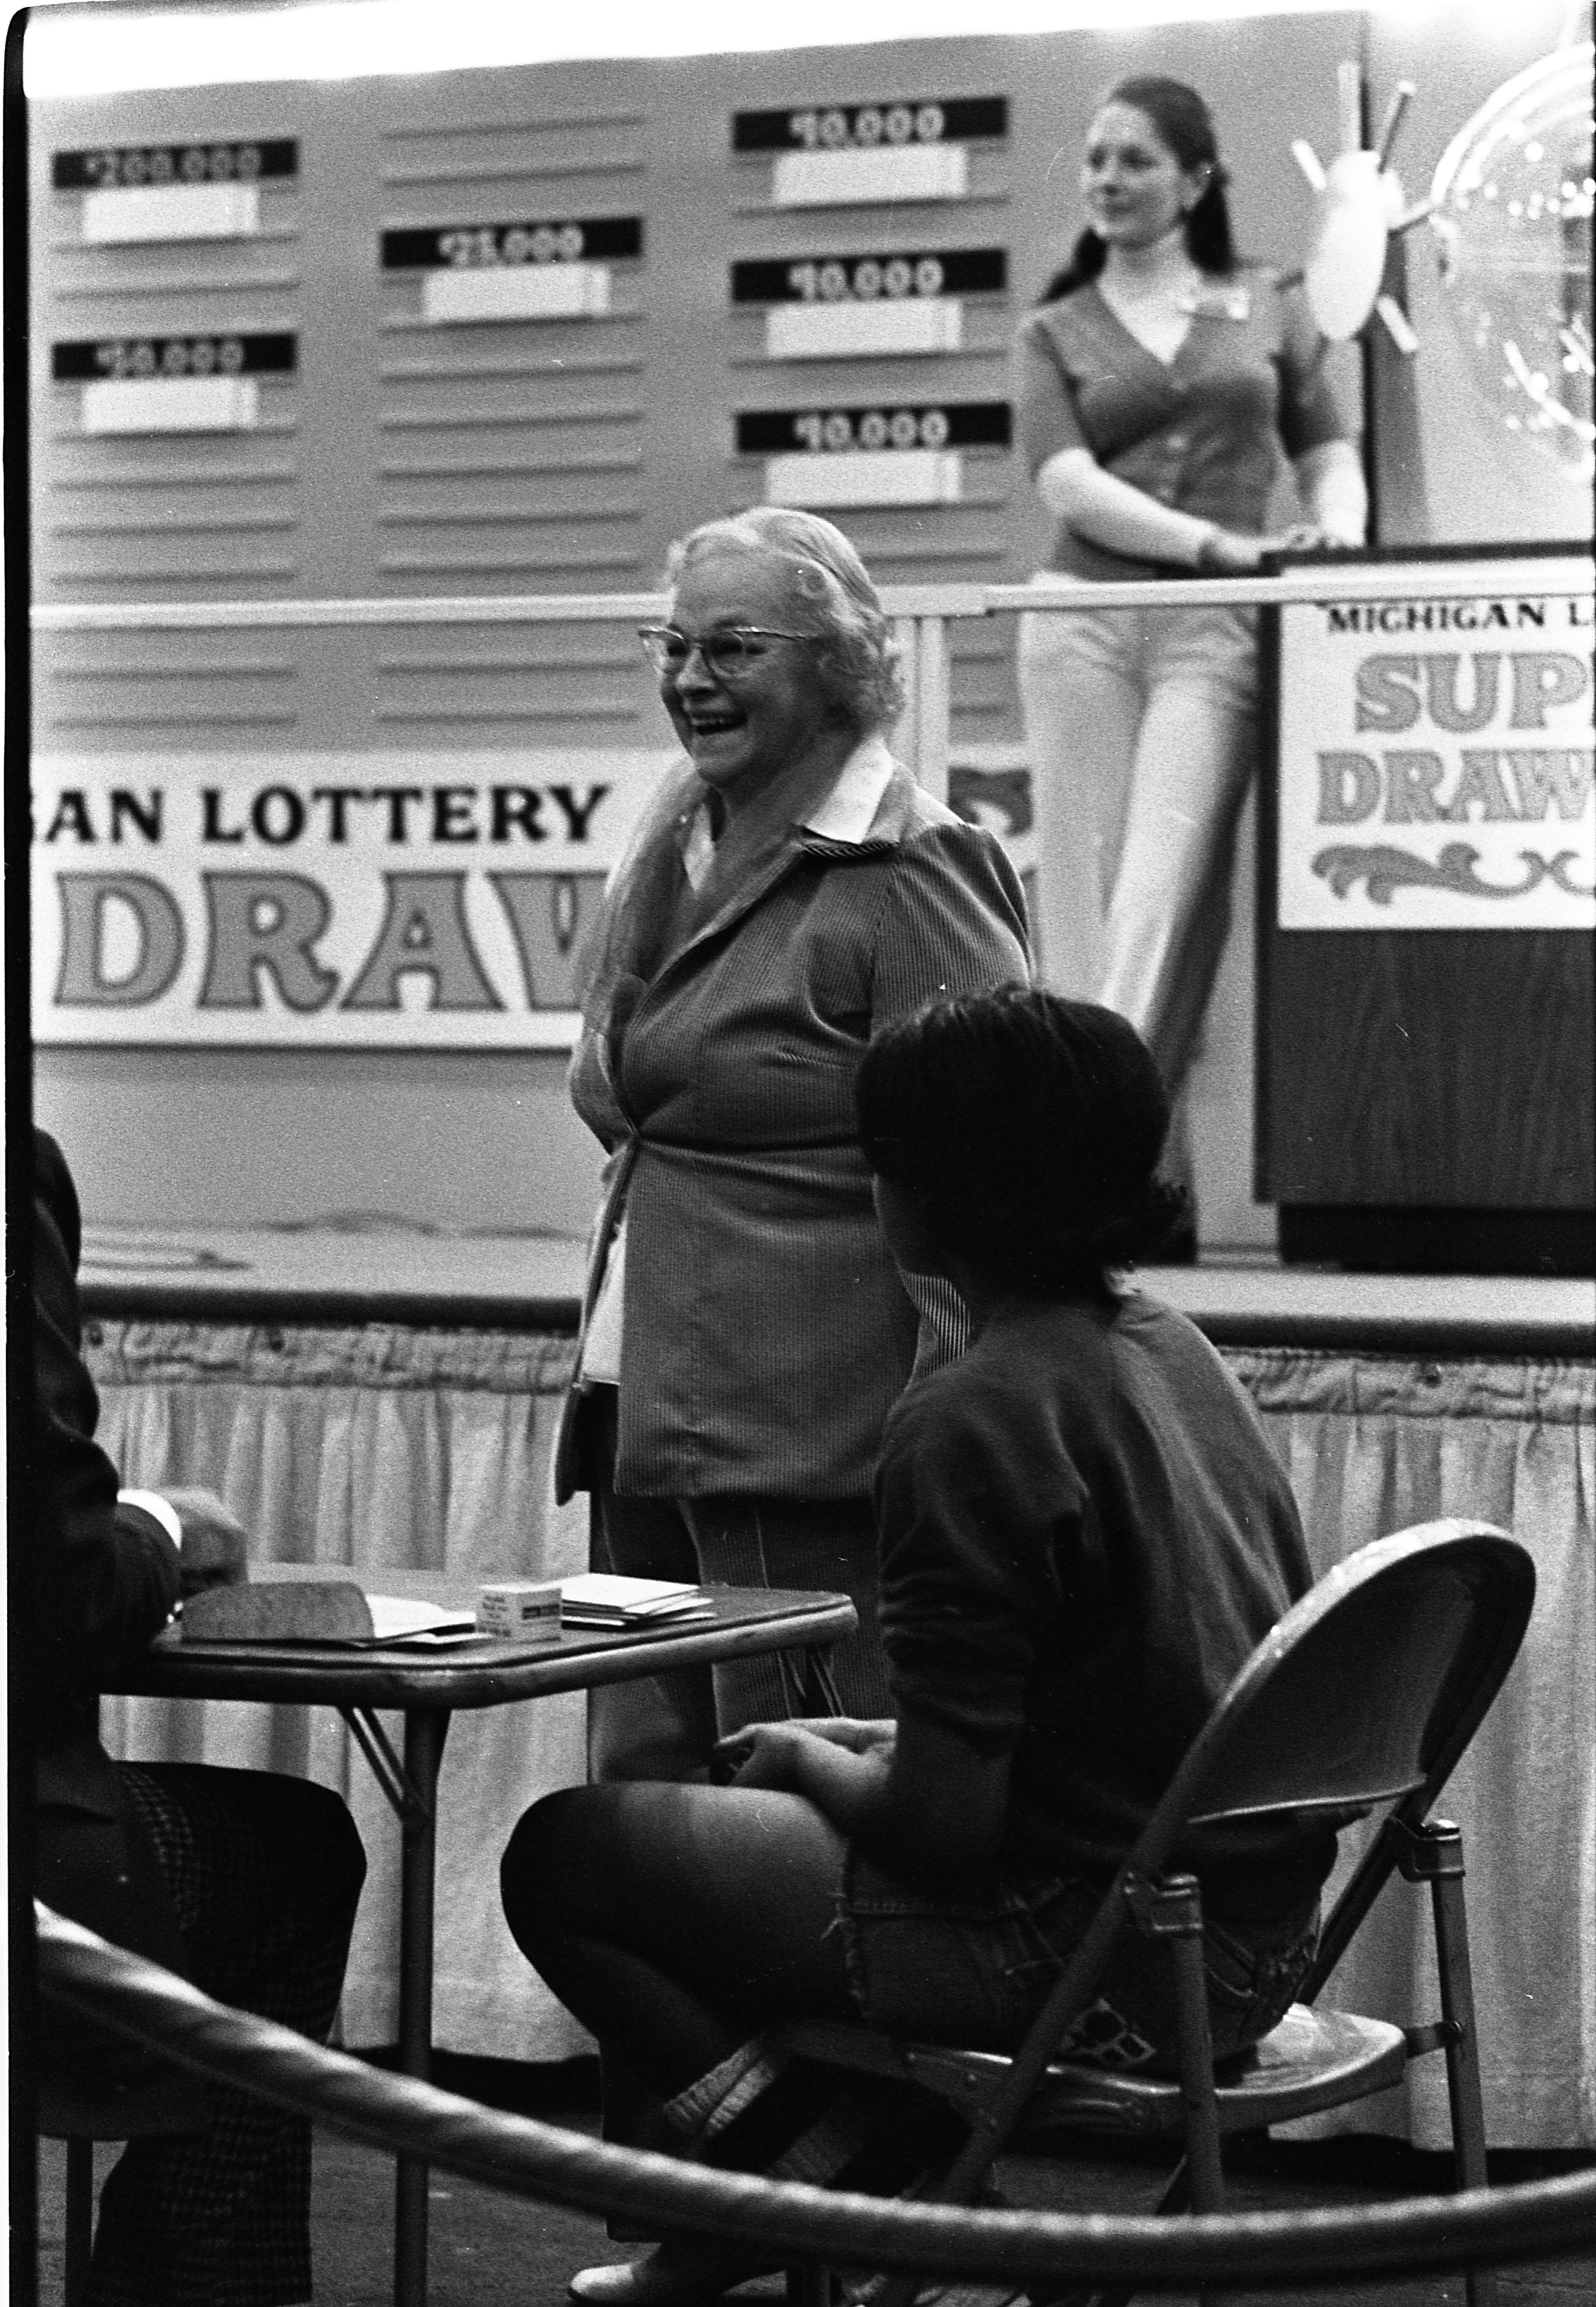 Katherine Gerstler Signs Up For Lottery Superdraw At Eastern Michigan University, December 13, 1974 image